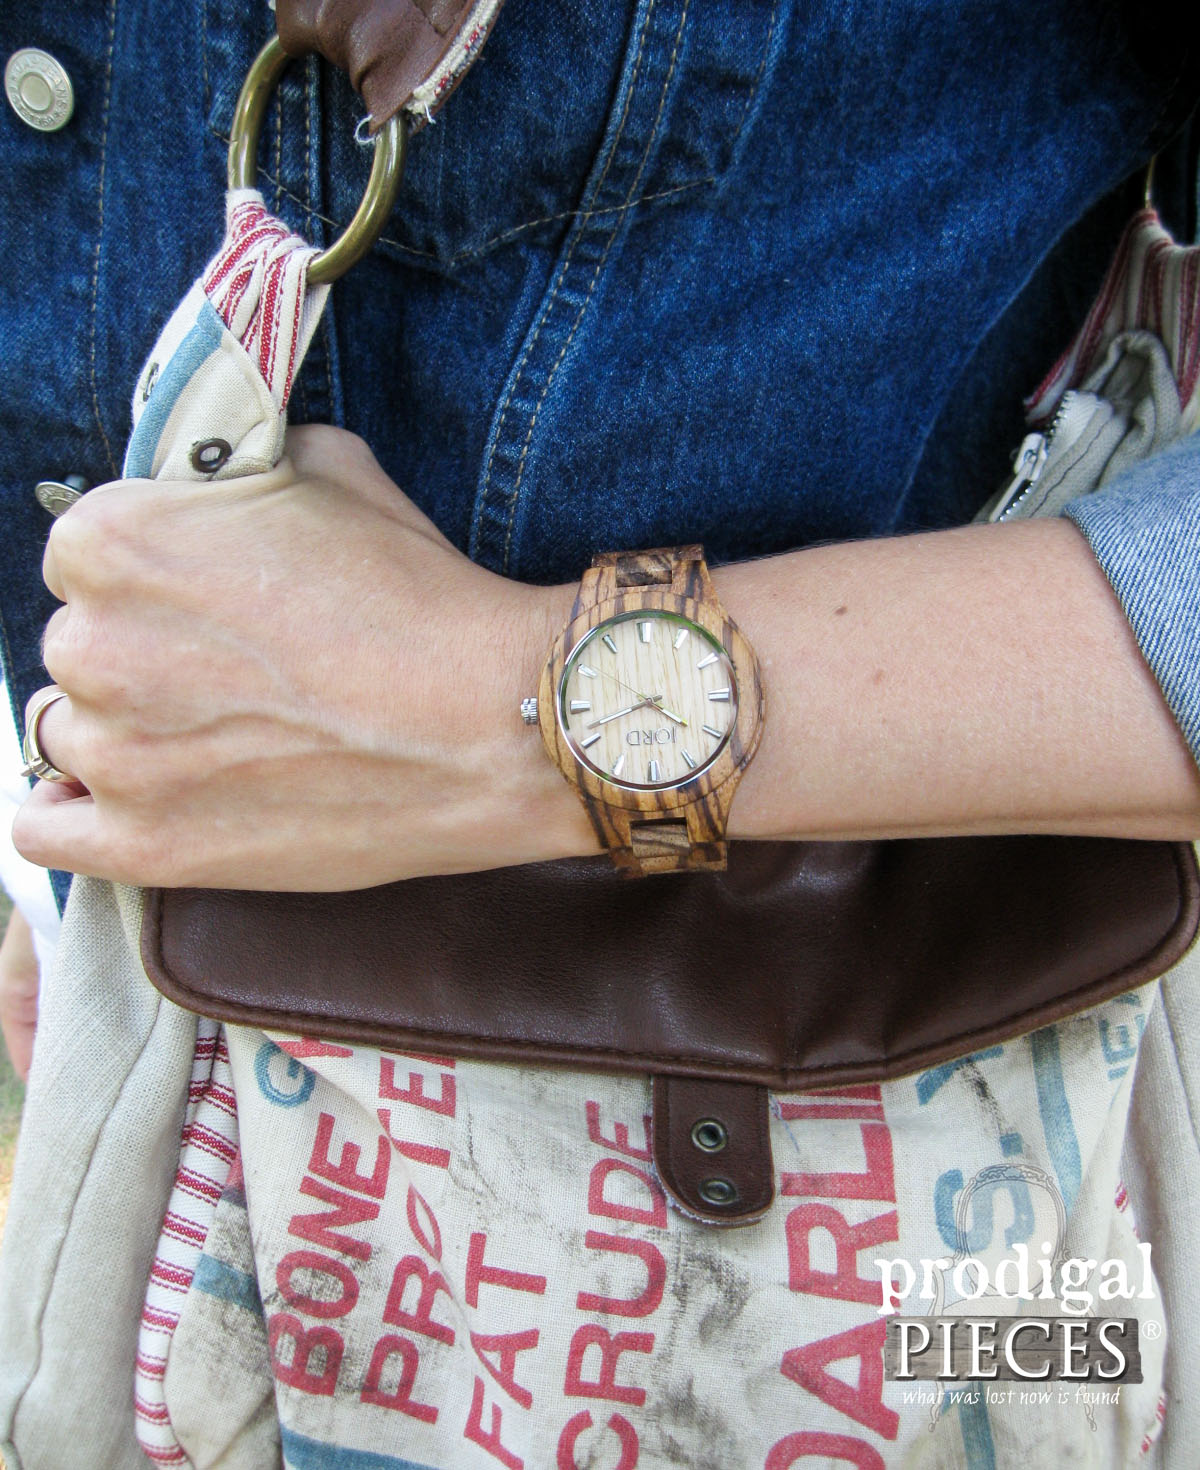 JORD Wood Watch with Feed Sack Purse by Prodigal Pieces | www.prodigalpieces.com